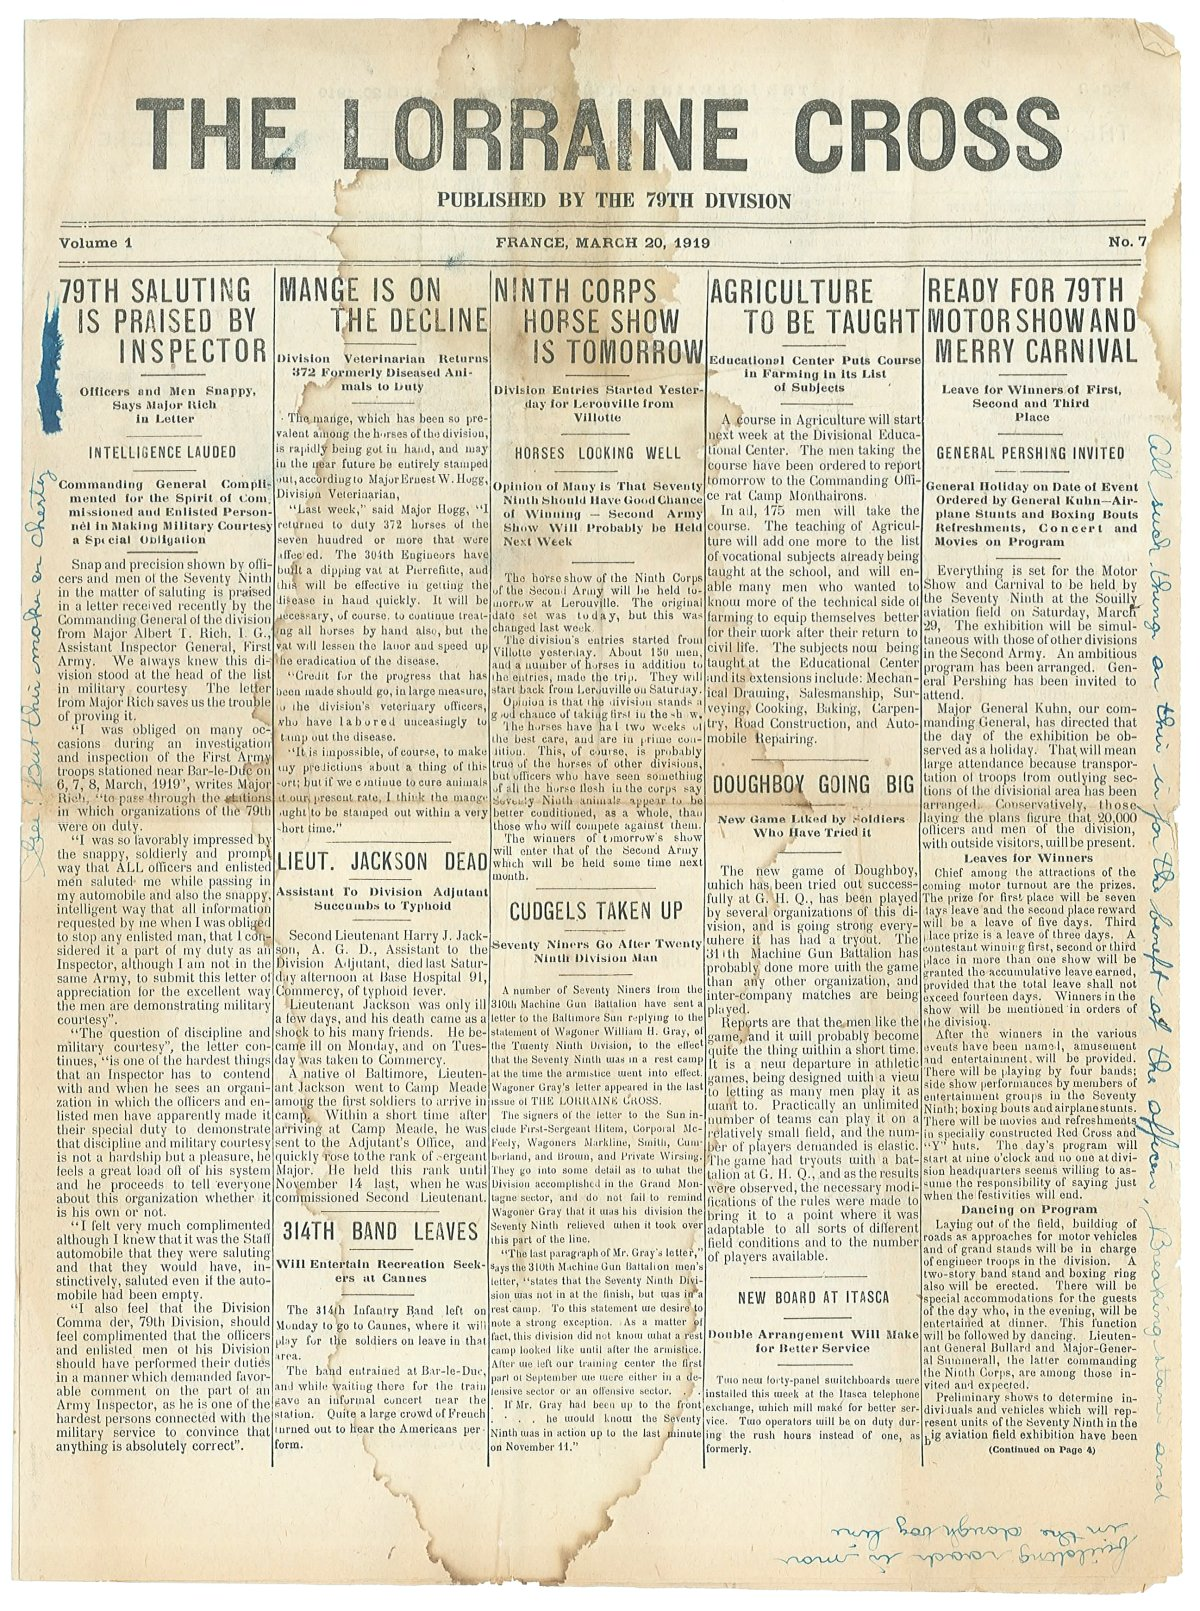 Lorraine Cross Newspaper Volume 1 Number 5 France March 20 1919 Page 1